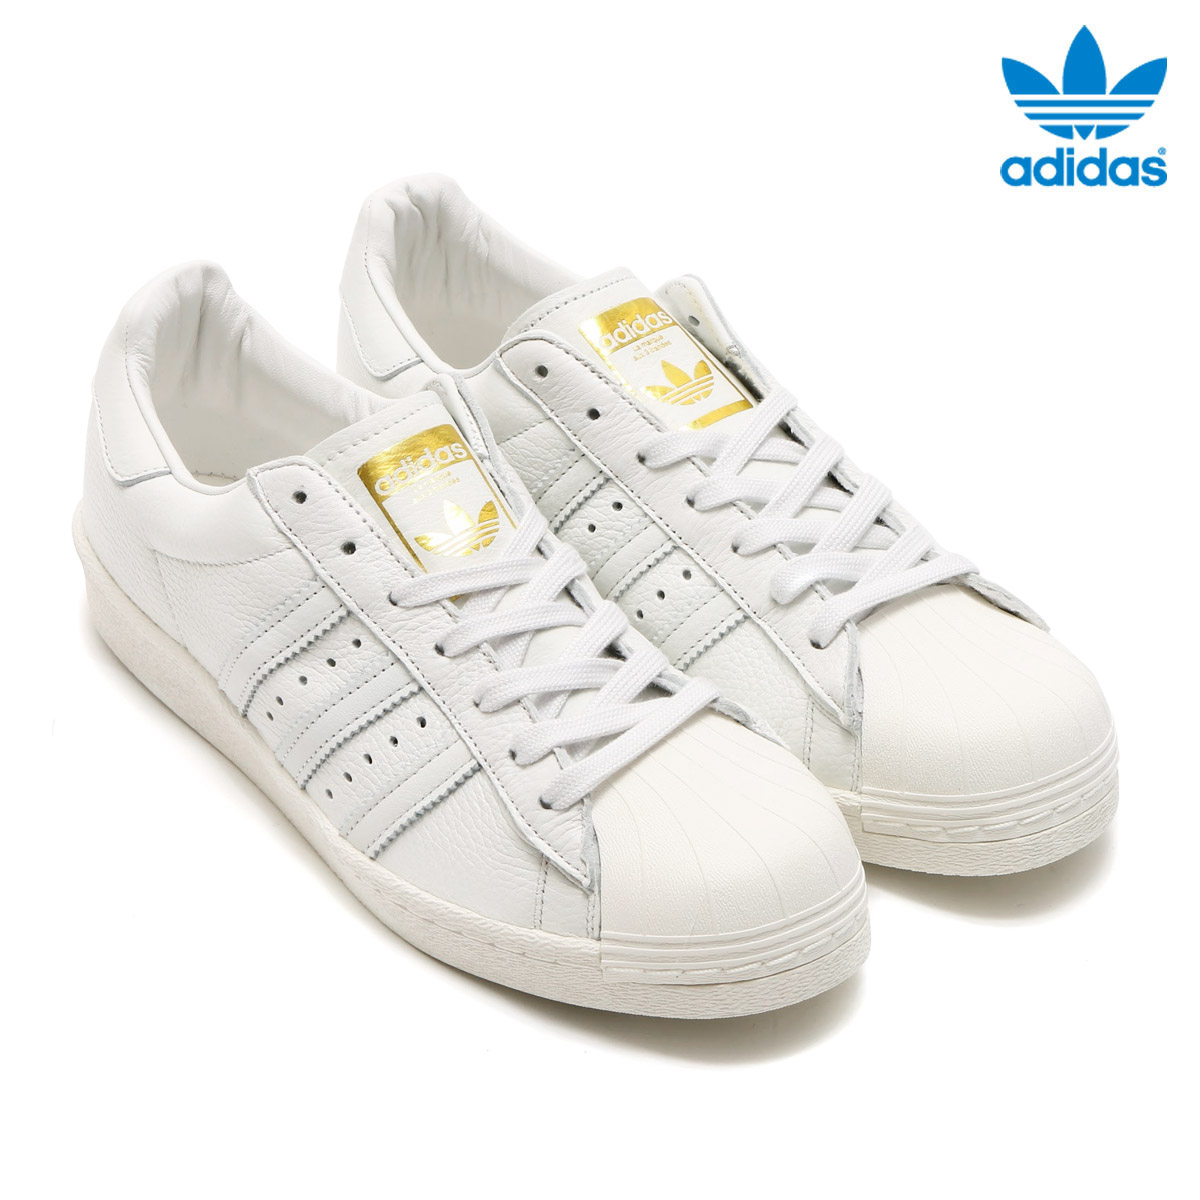 adidas superstar boost white